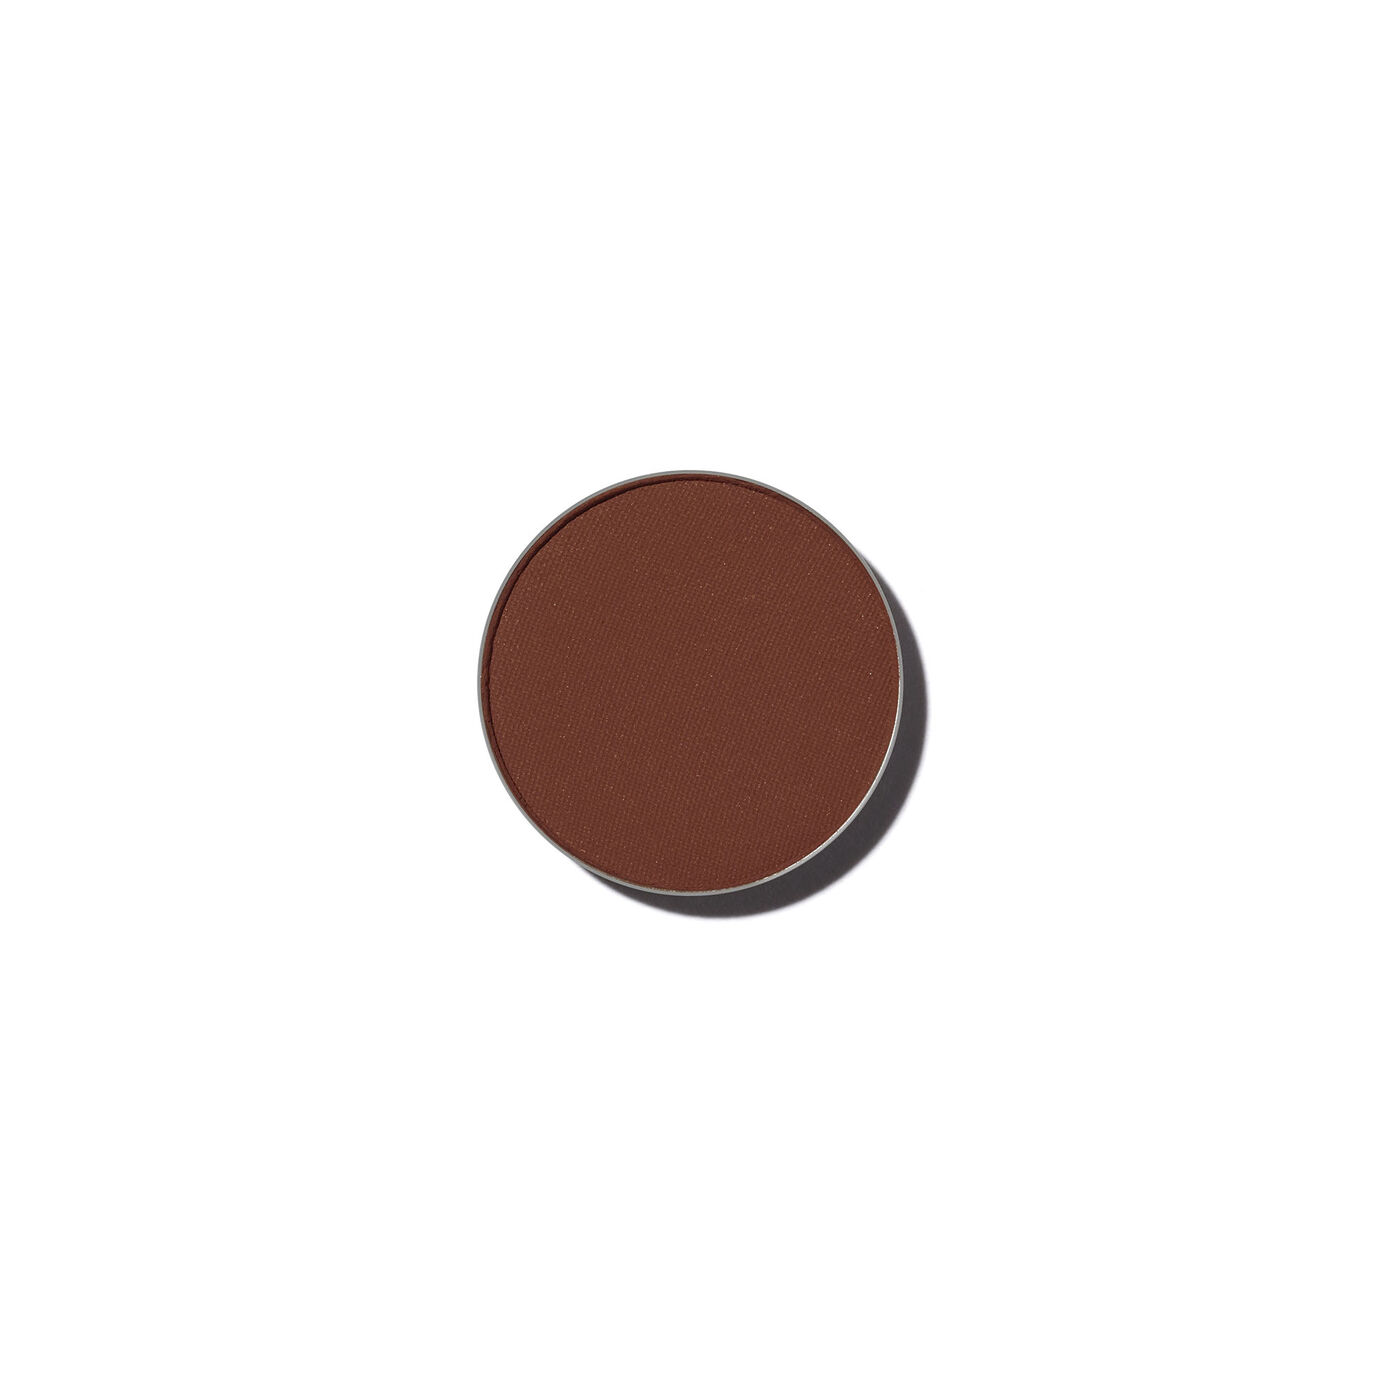 Eyeshadow Singles - Hot Chocolate